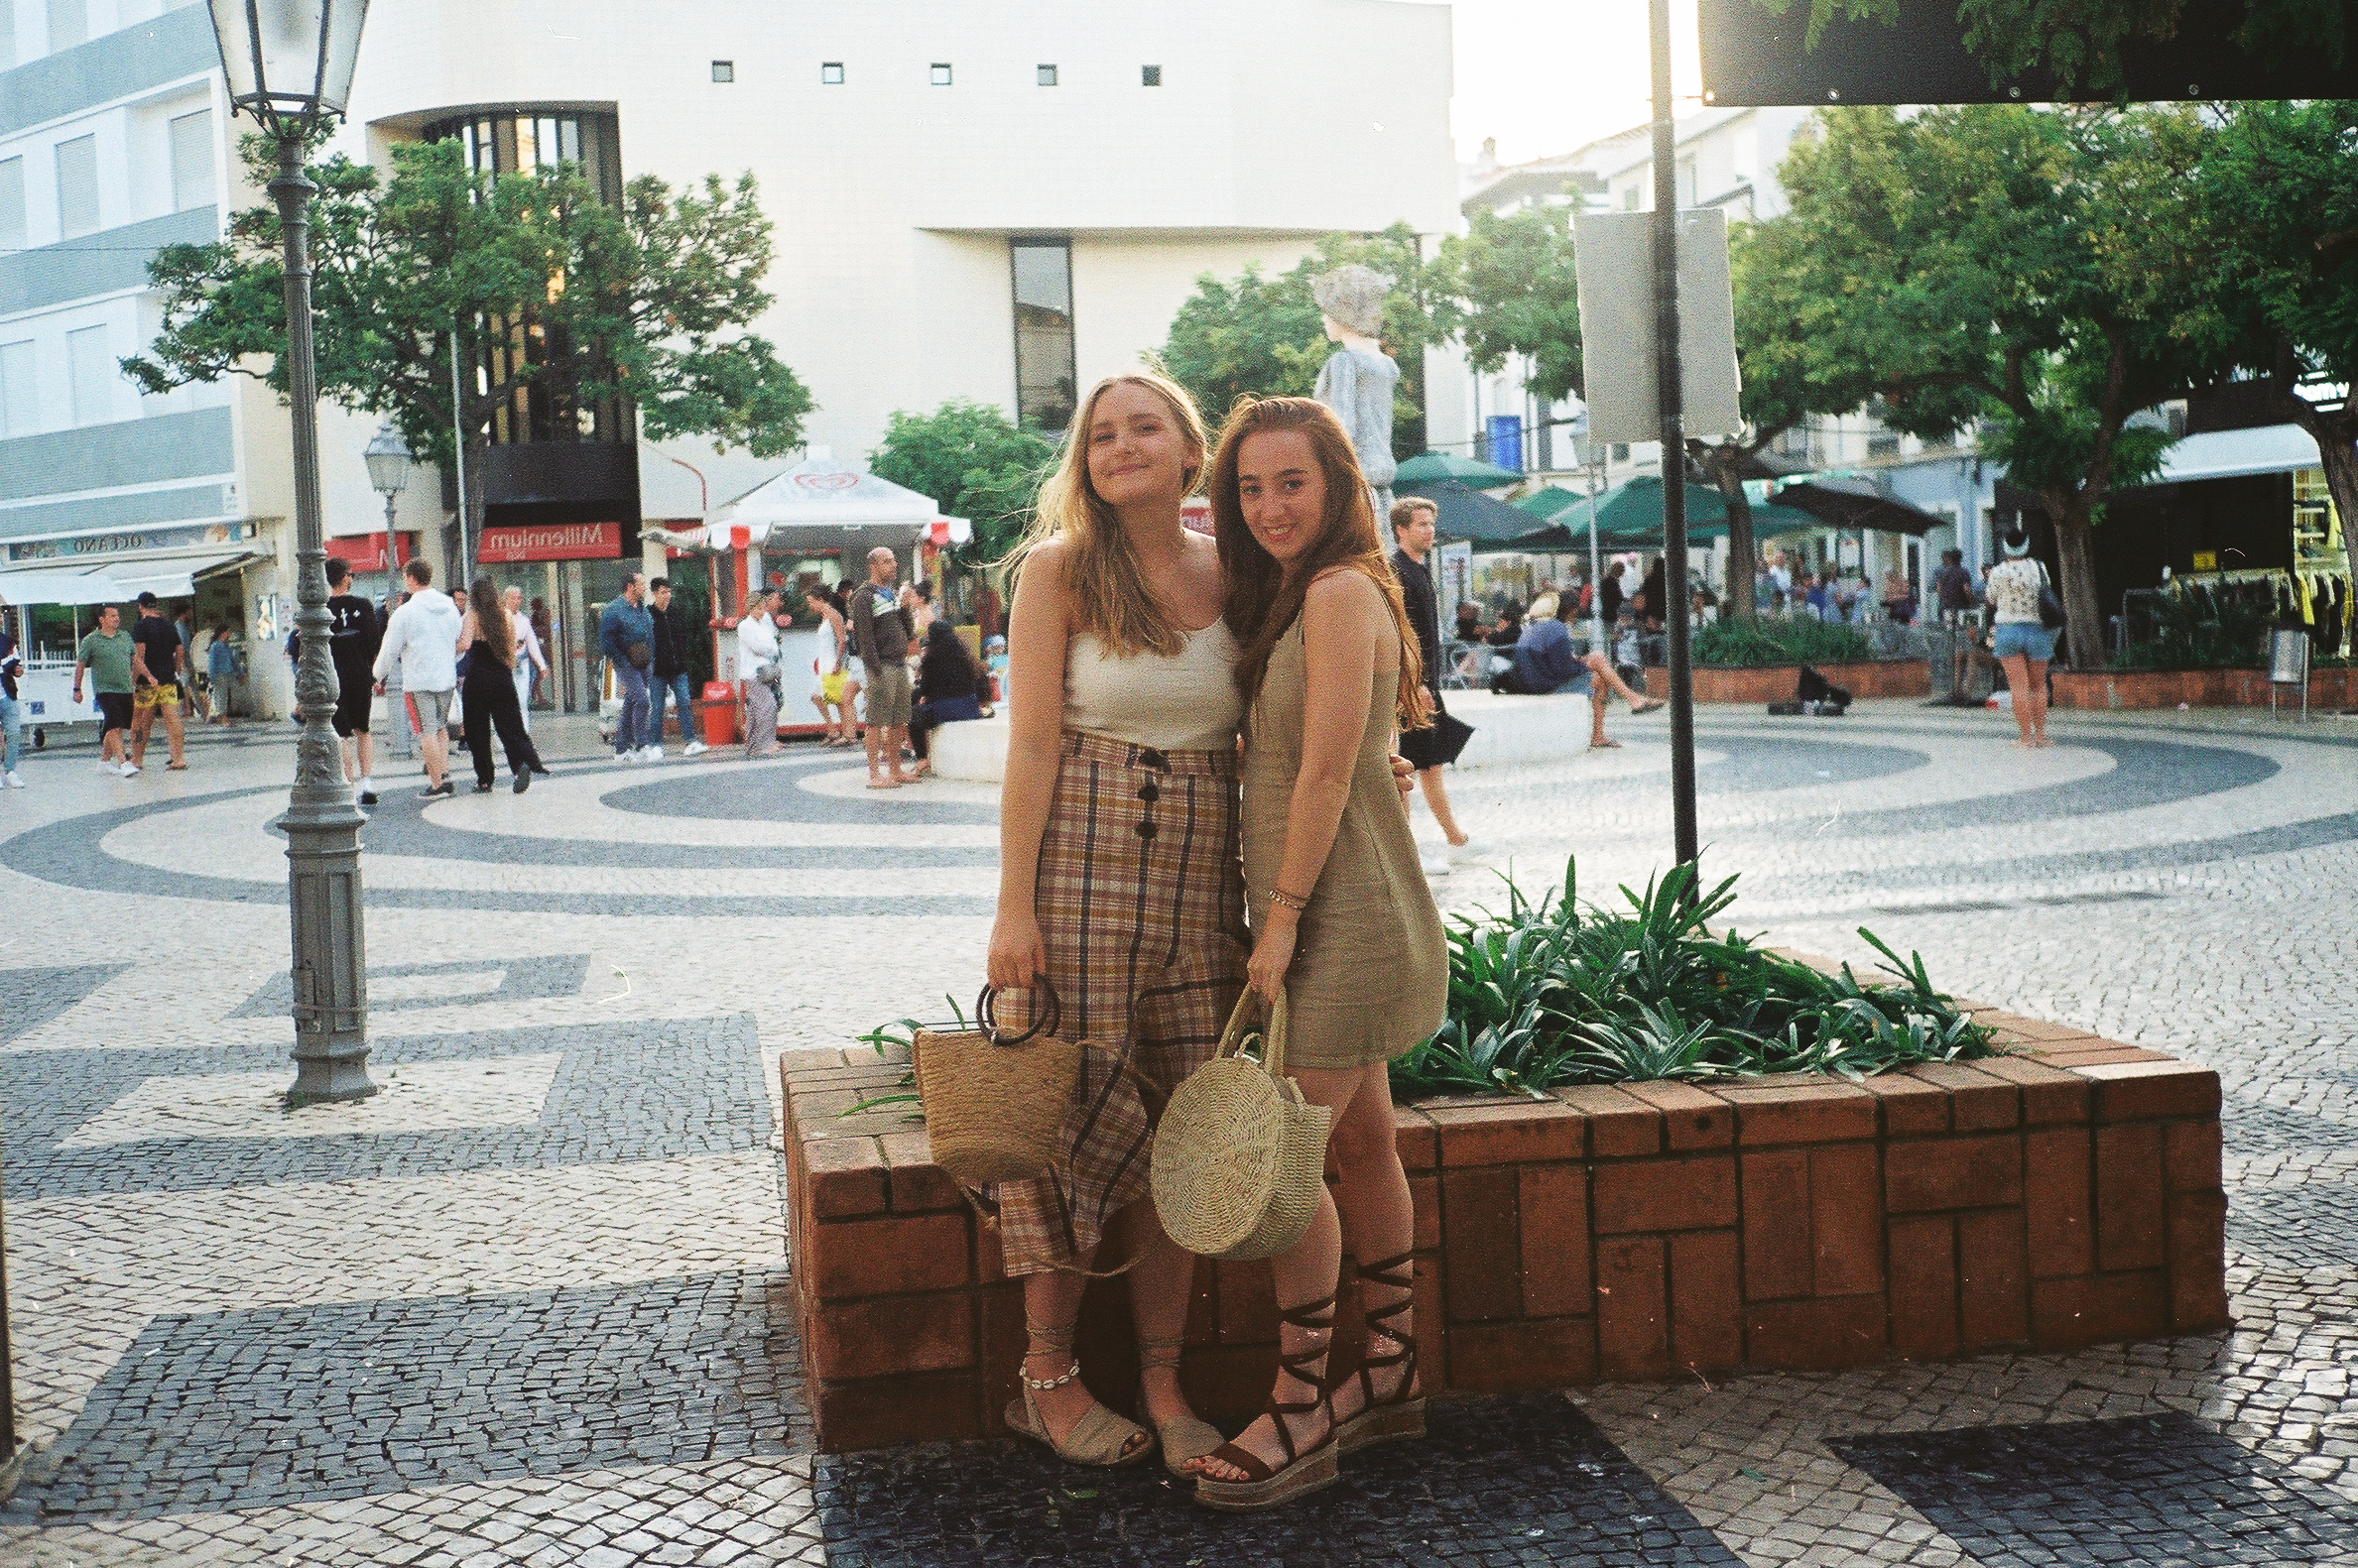 a-girls-trip-to-portugal-on-35mm-film27.jpg